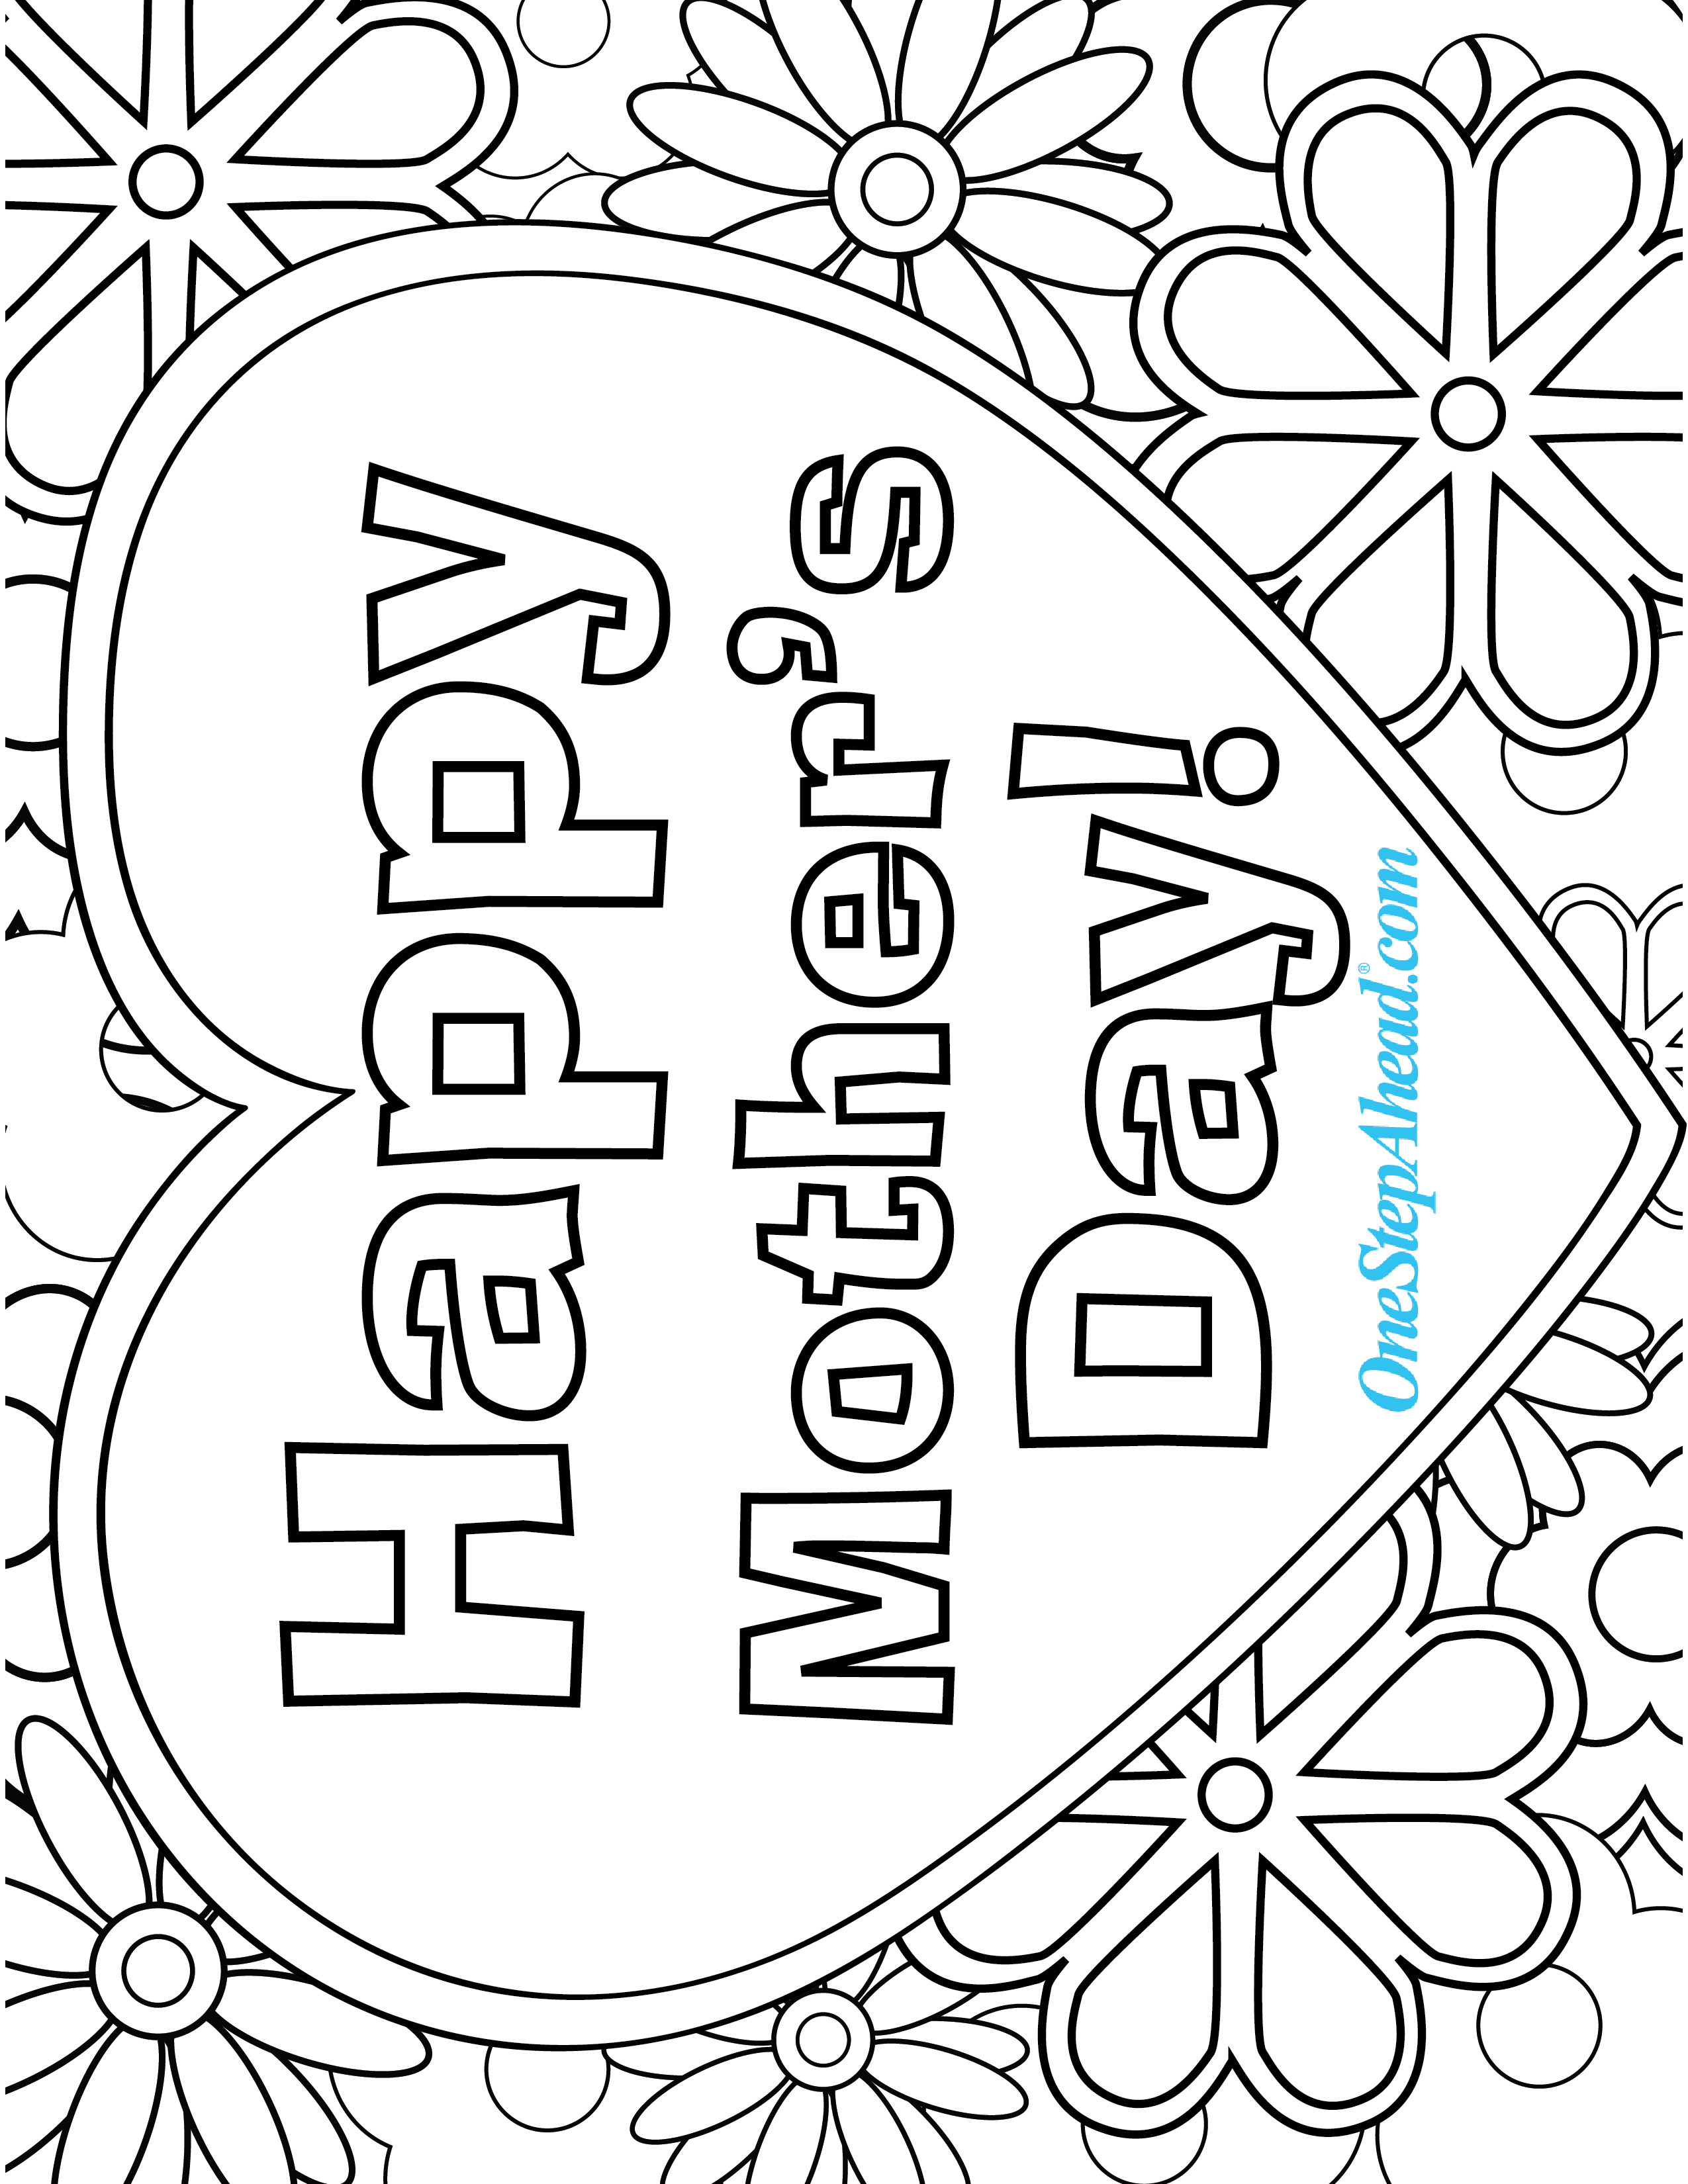 colouring pages for mothers day wallpaper free download happy mothers day coloring pages 2013 pages for day colouring mothers